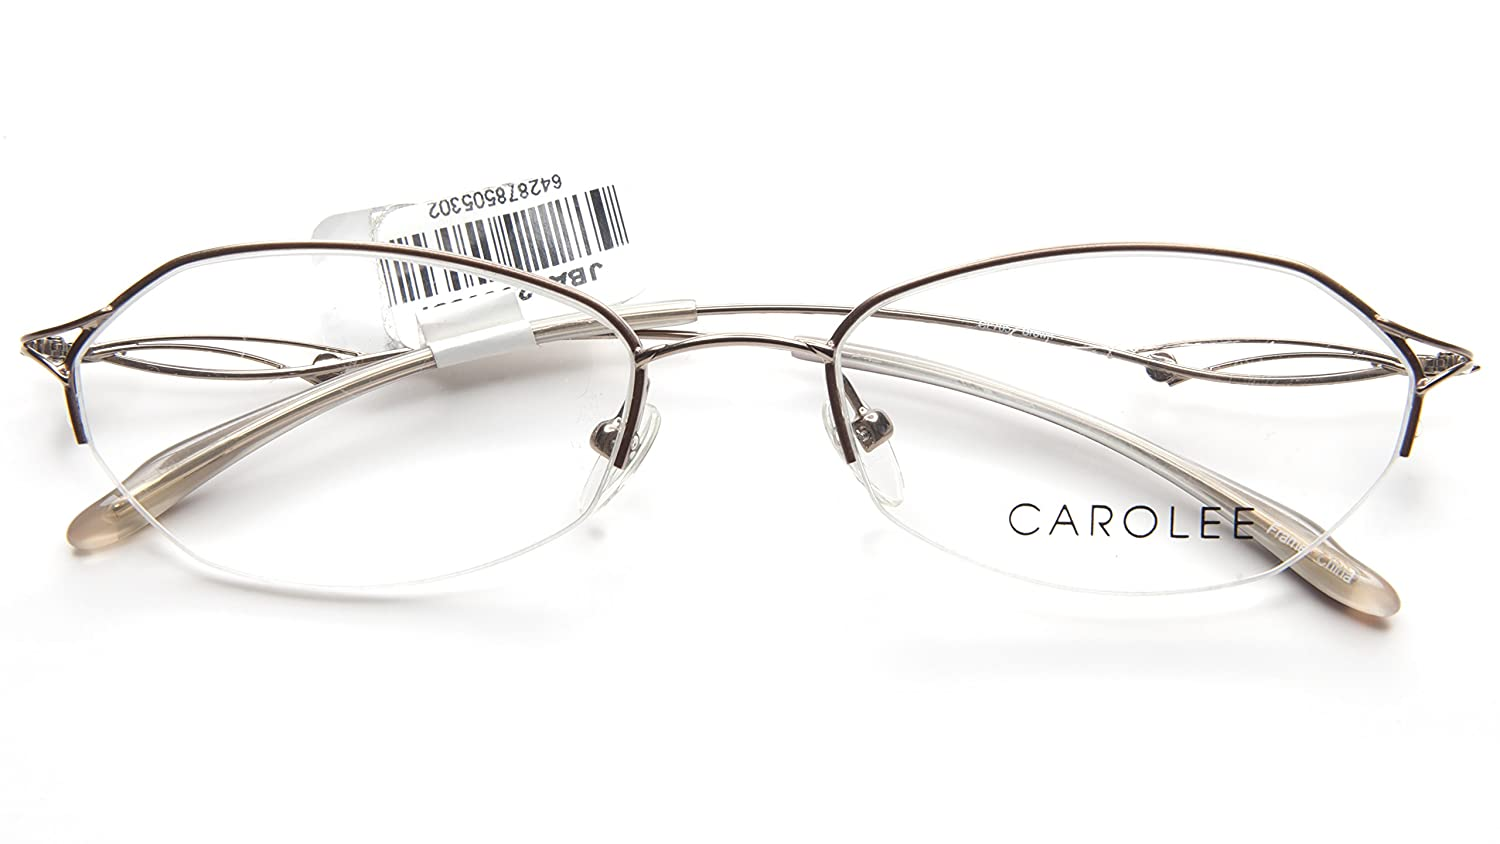 fd2db30e1e NEW Carolee CL705 BROWN EYEGLASSES WOMEN GLASSES FRAME CL 705 52-18-135  B30mm  Amazon.ca  Clothing   Accessories